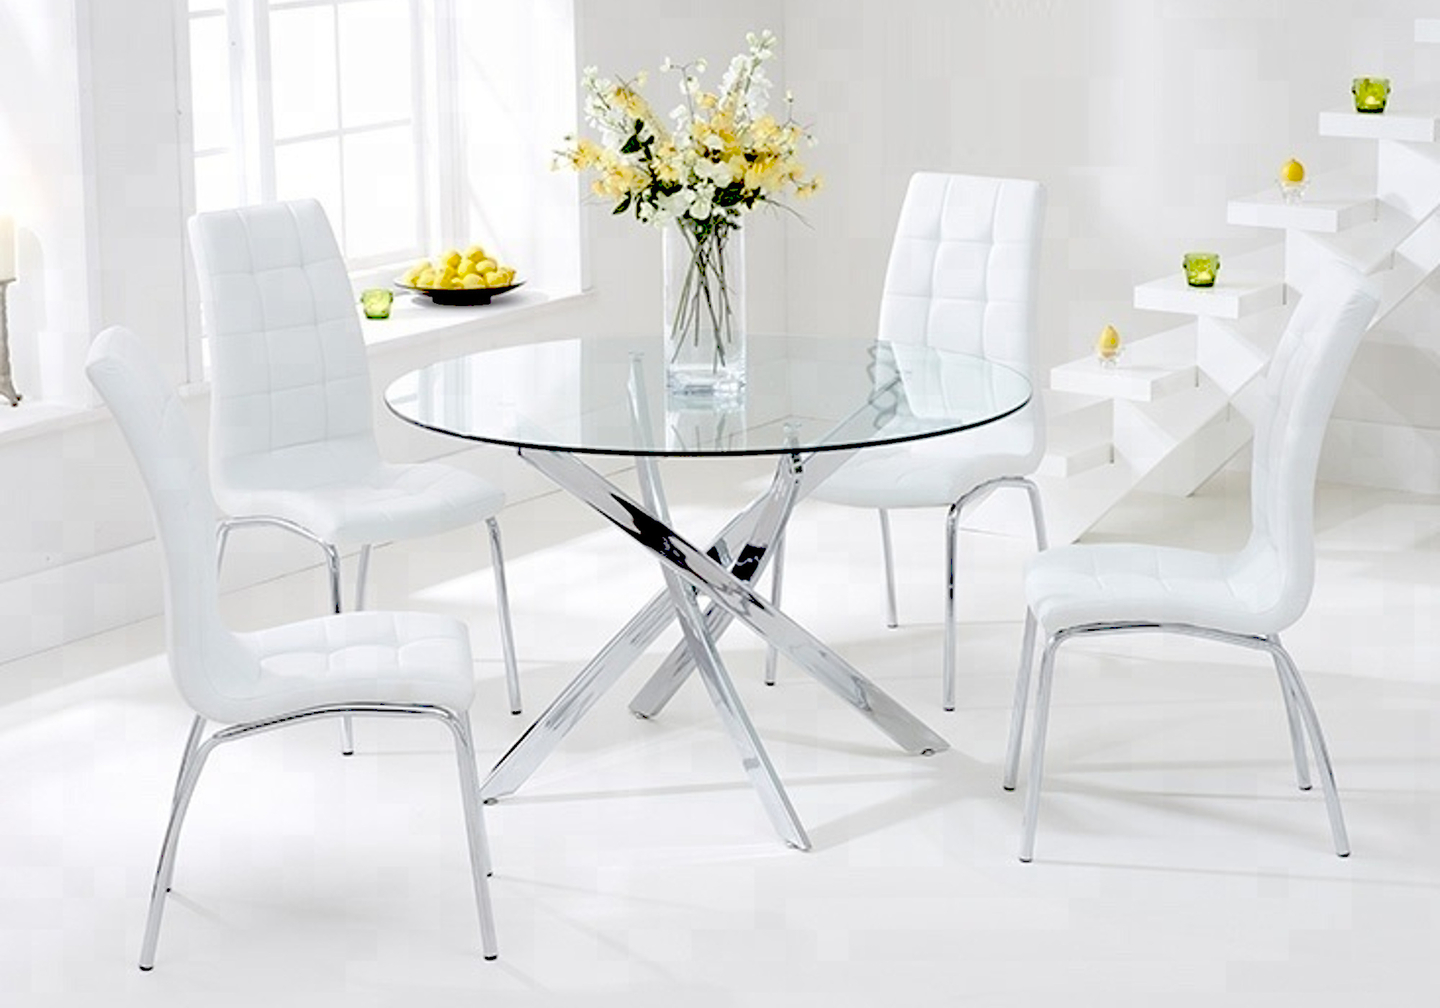 Table ronde chromé 6 chaises blanc DESIGN